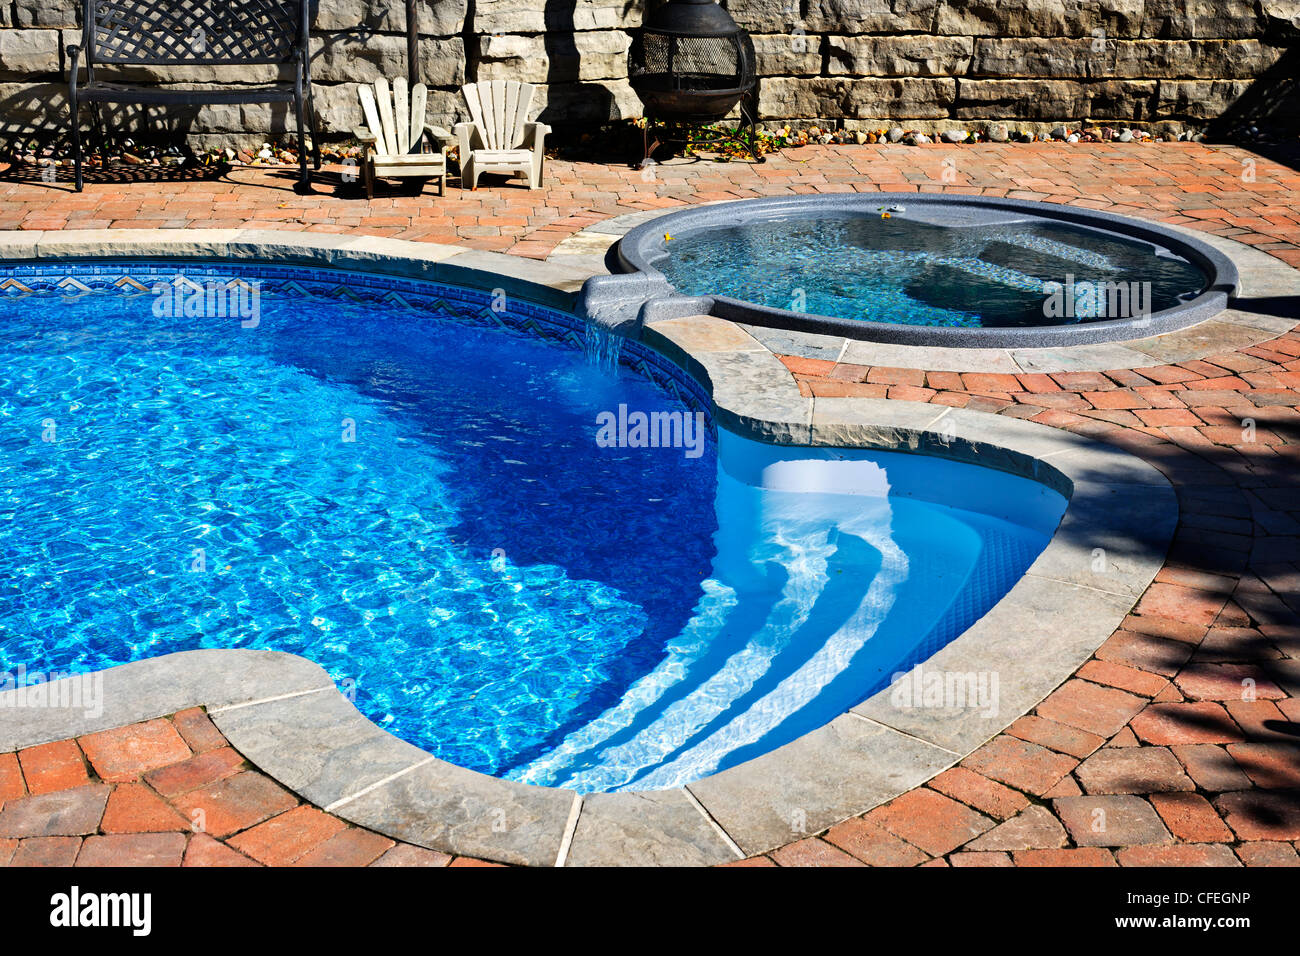 Outdoor Hot Tub Stock Photos & Outdoor Hot Tub Stock Images - Alamy